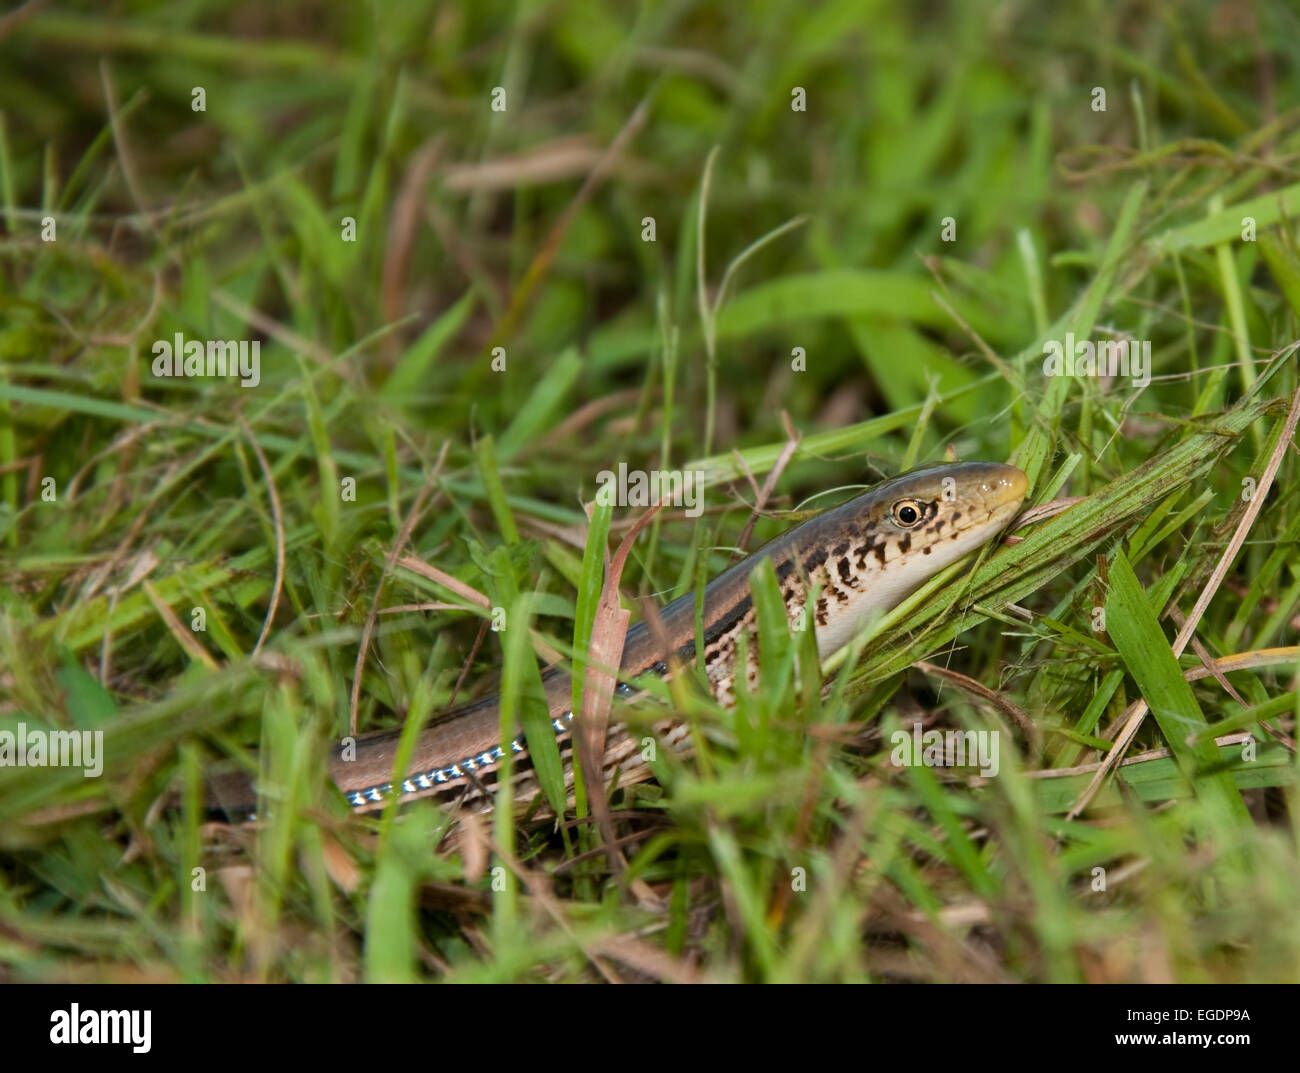 Lined snake in grass - Stock Image